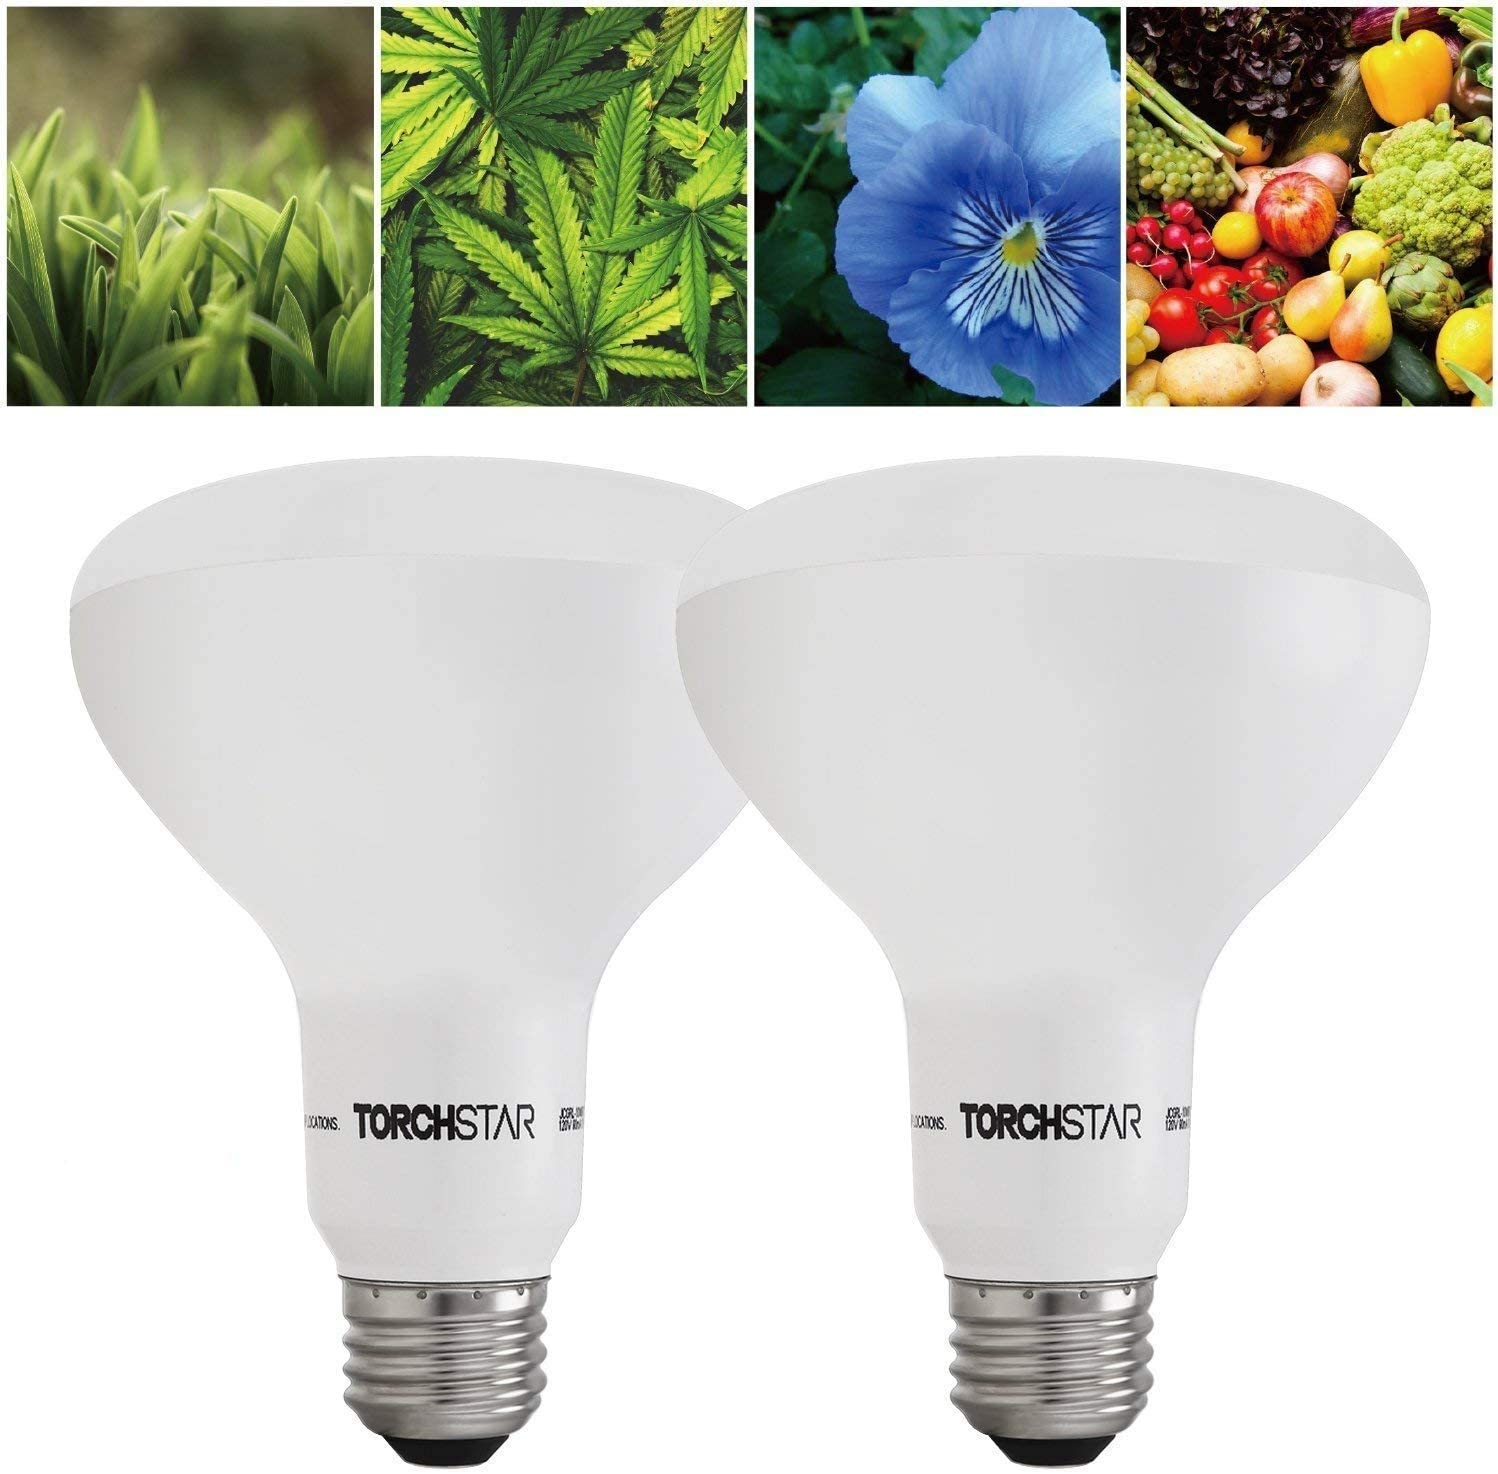 TORCHSTAR Grow Light Bulb, 10W BR30 Dimmable LED Plant Light UL-Listed for Indoor Planting, Gardening, Green House, 120 Flood Light, 2 Pack